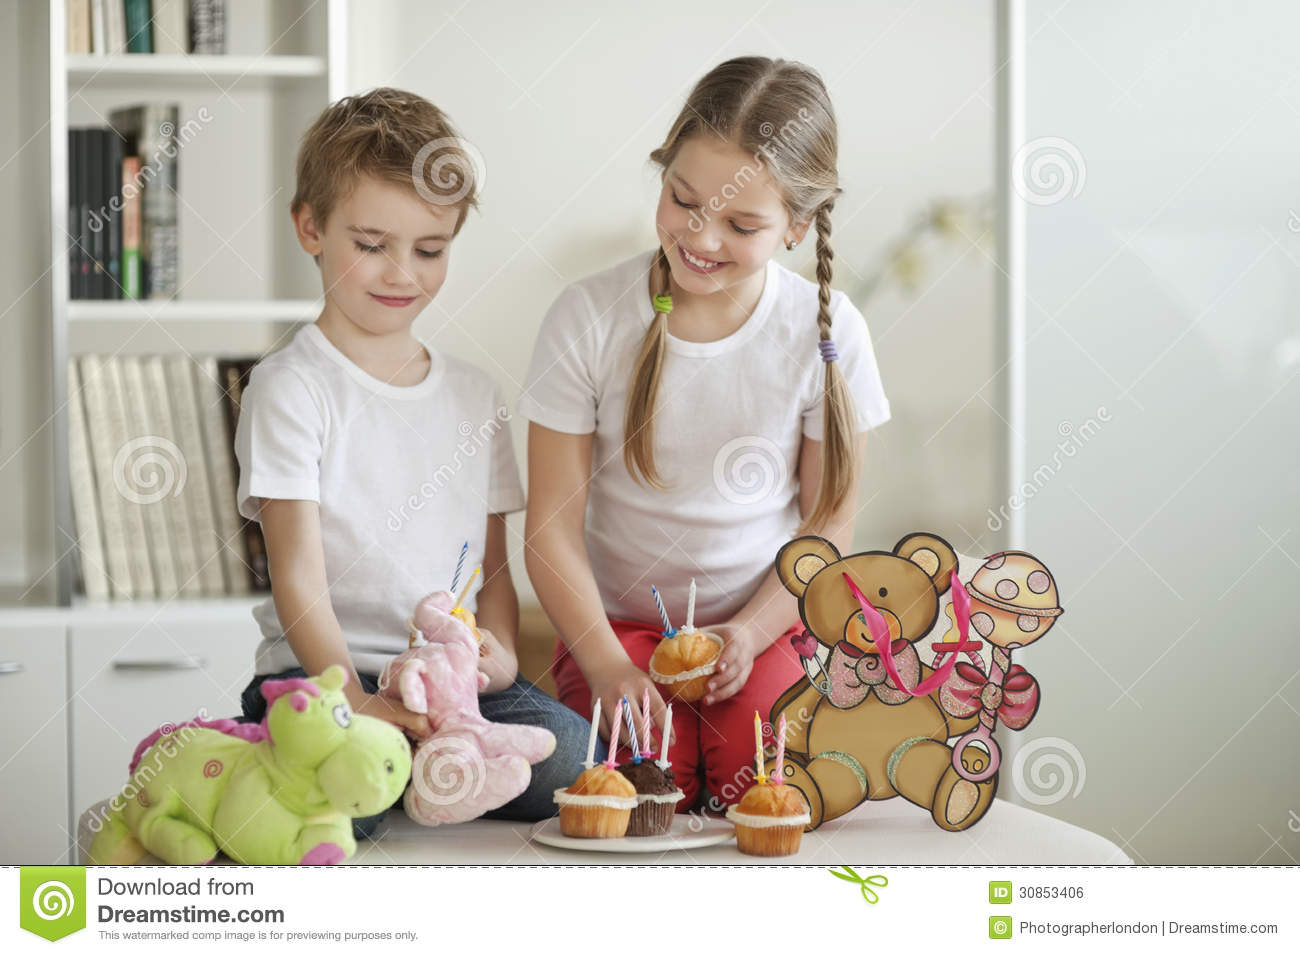 Toys For Siblings : Siblings and soft toys celebrating birthday with cup cakes